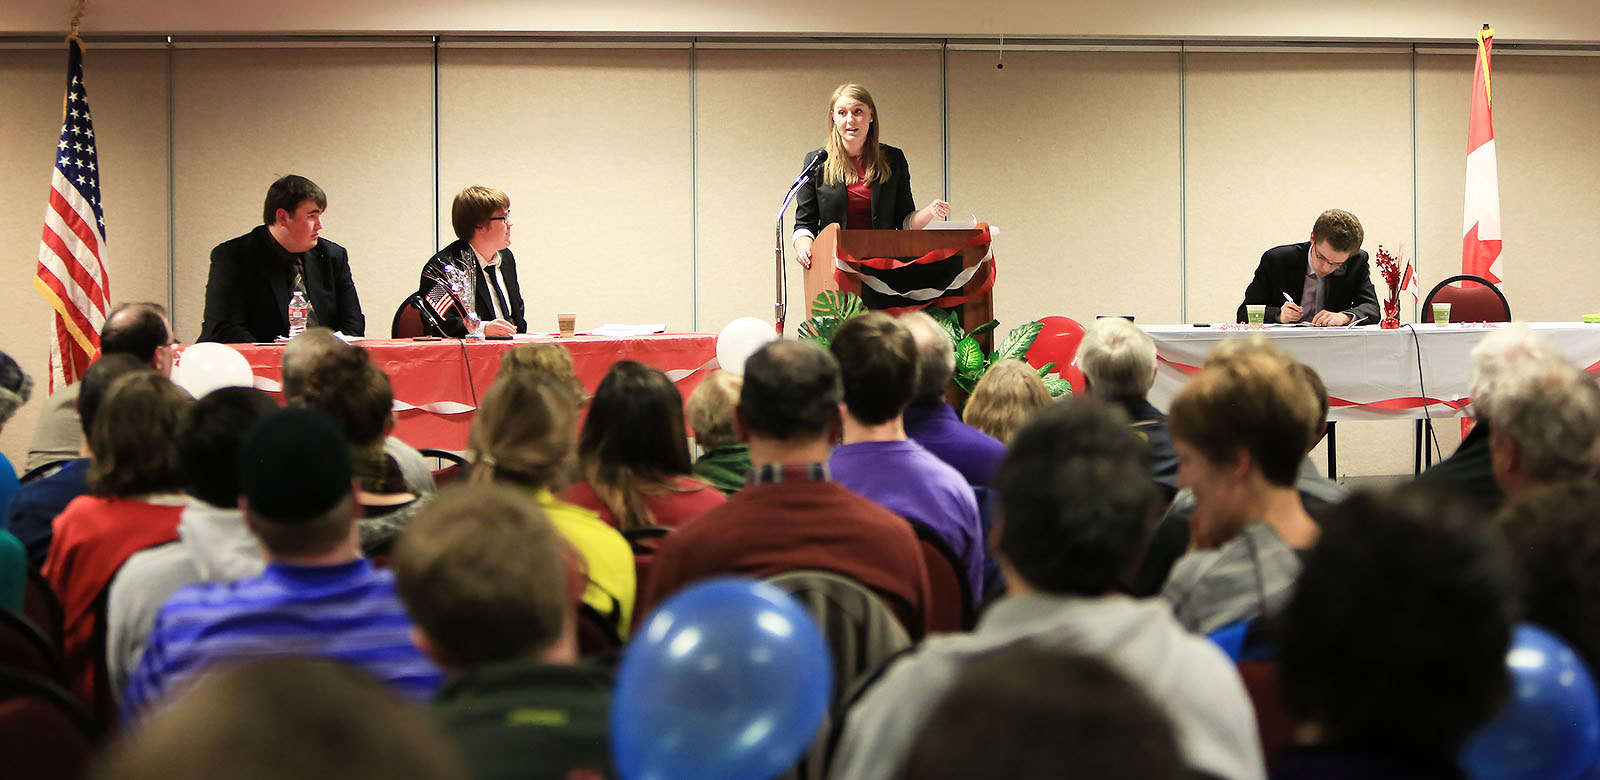 A student speaks in front of a crowd, Carroll College Forensics